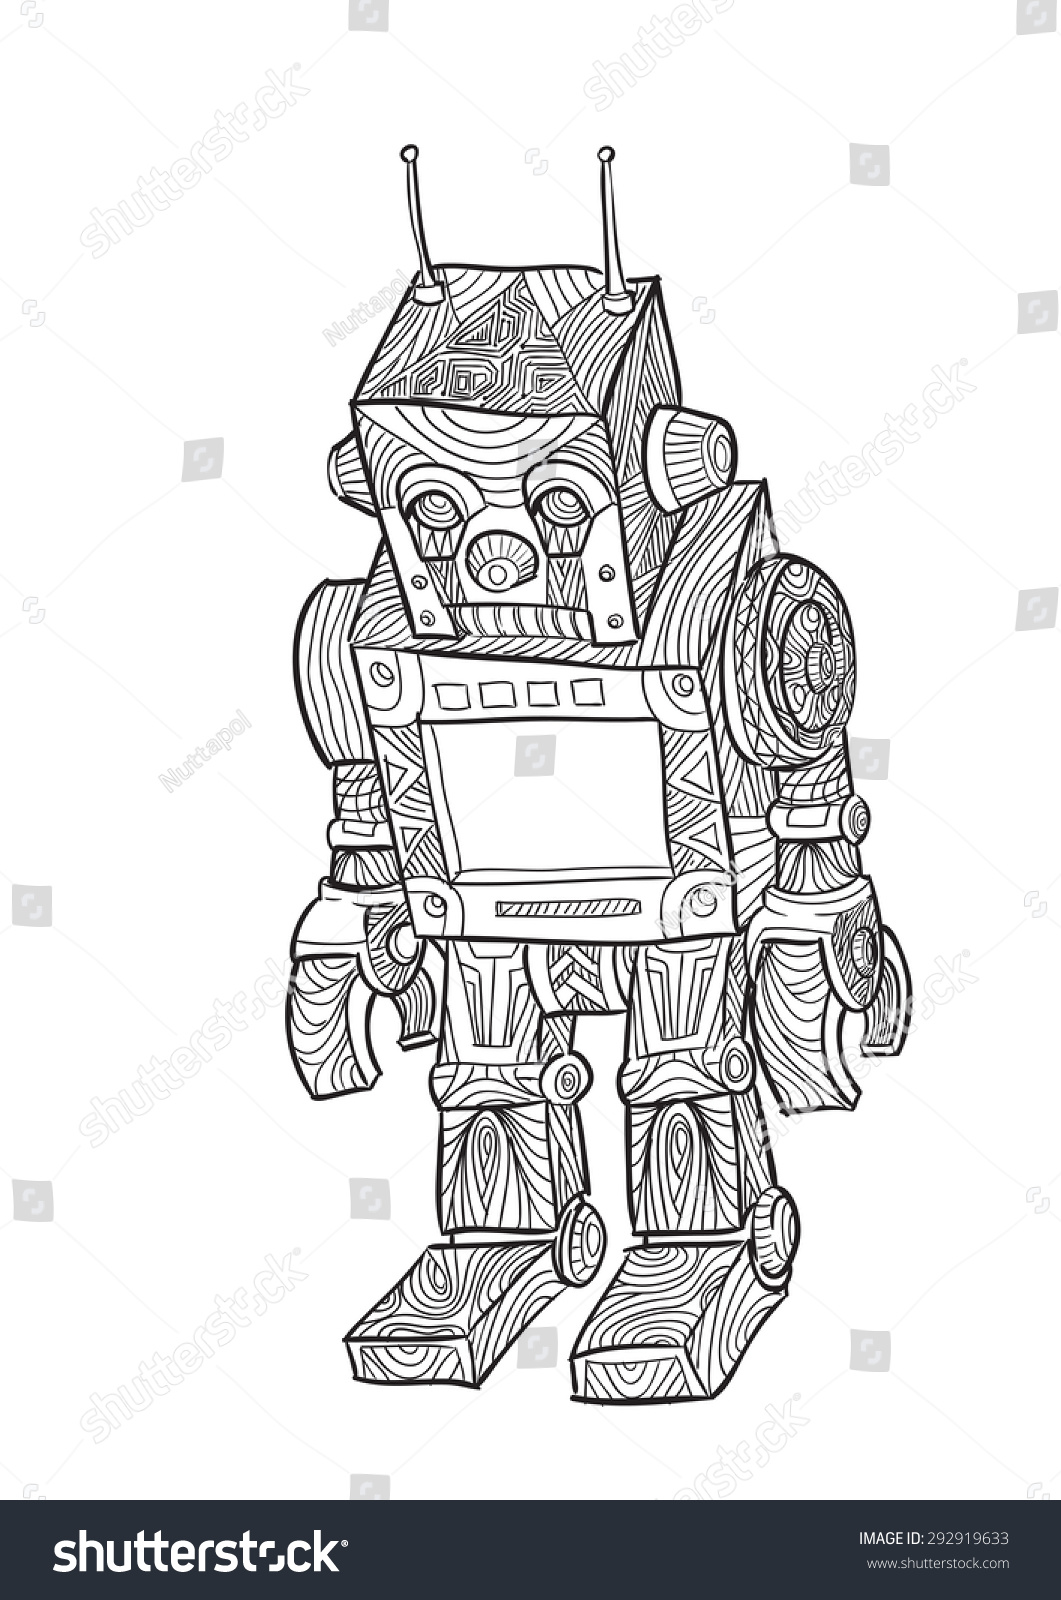 Uncategorized Draw A Robot hand draw robot zentangle style stock vector 292919633 shutterstock of in style